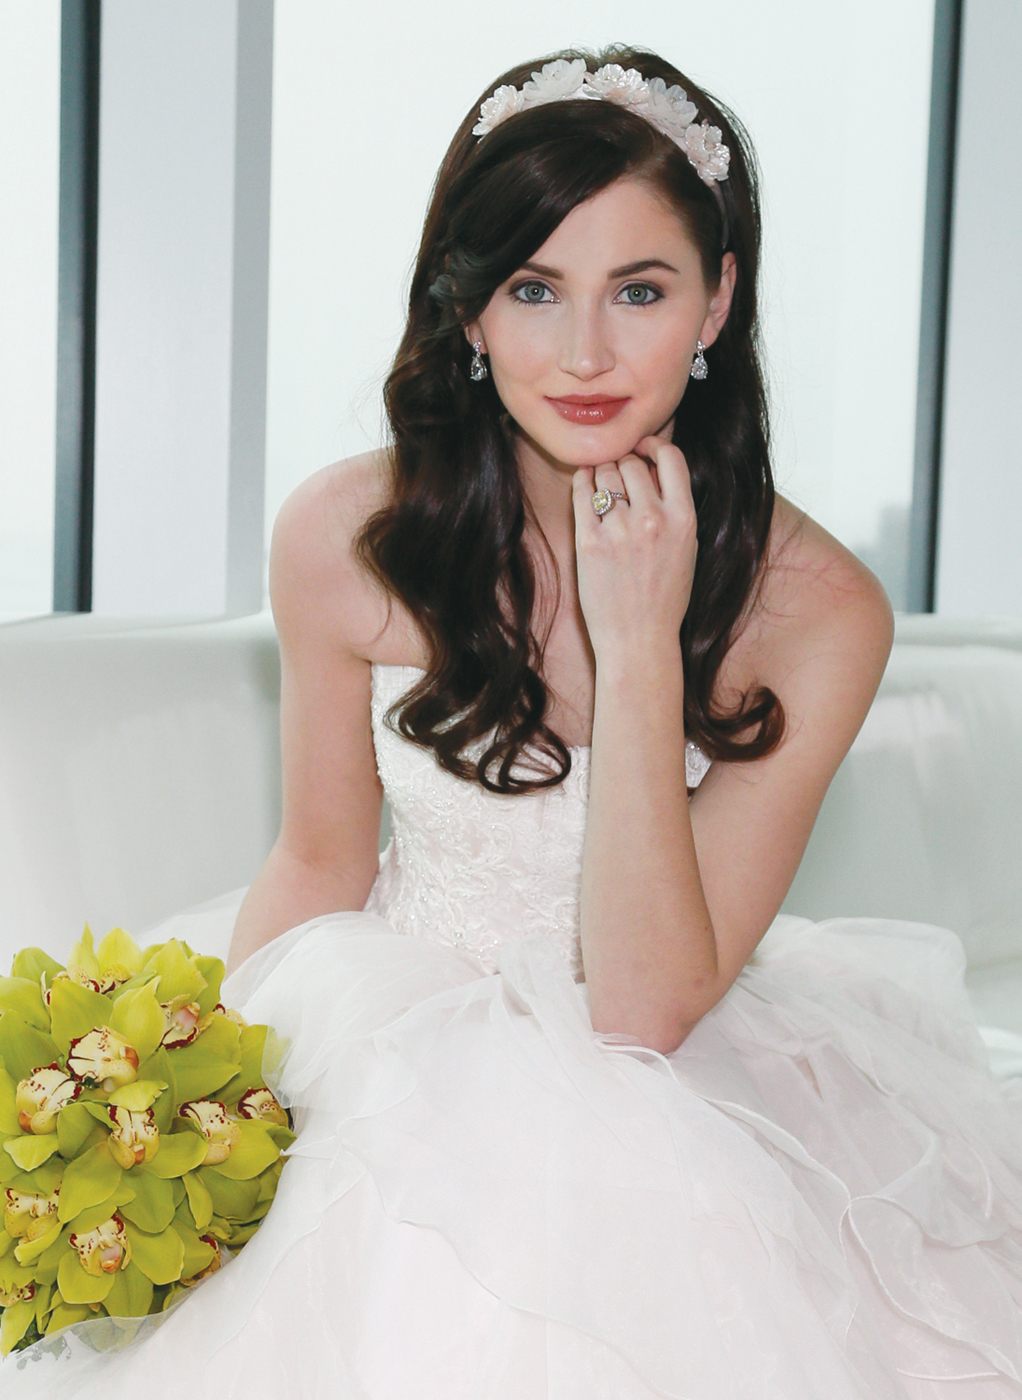 Hair & Makeup: The Bridal Suite NY, Gown: Oleg Cassini (CWG568), Bouquet: Ariston Flowers